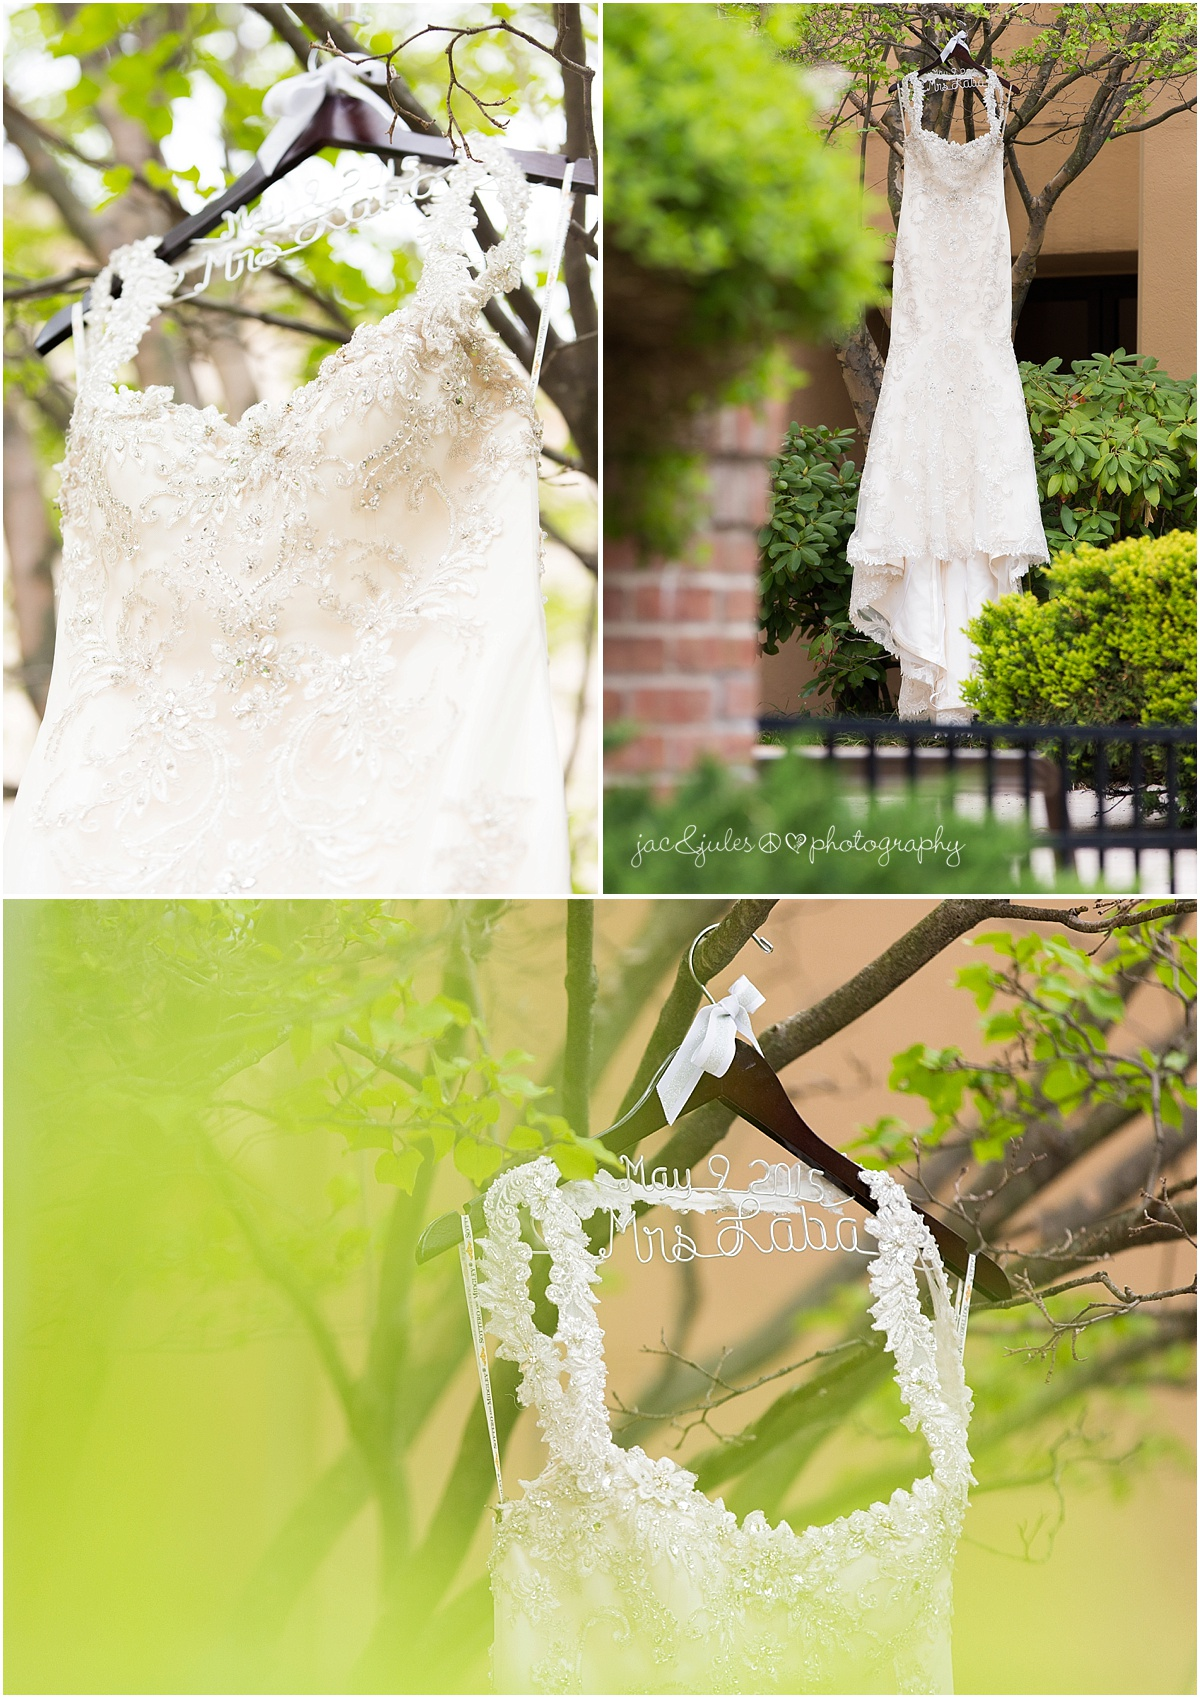 beautiful wedding dress and custom hanger photographed outdoors